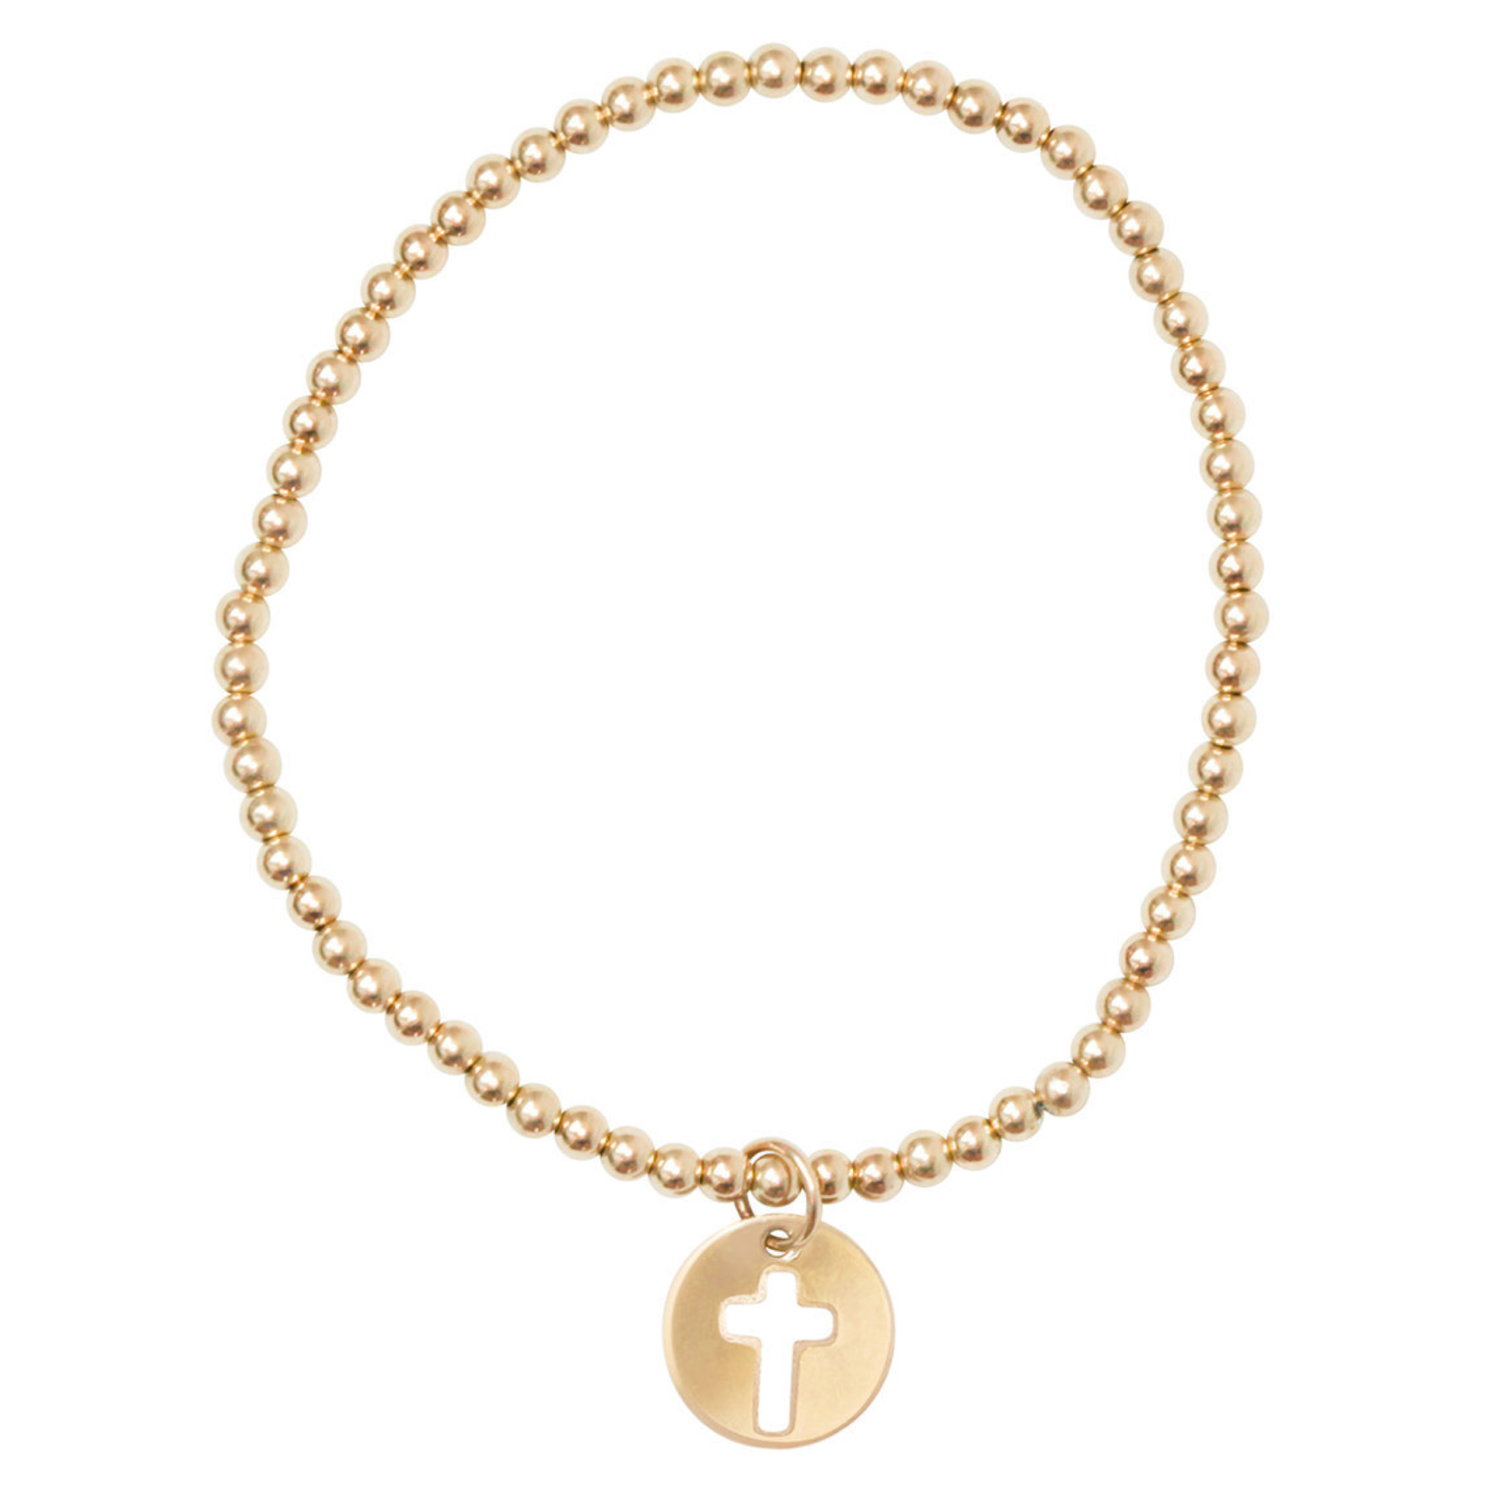 enew blessed gold classic bracelet gold 3mm bead